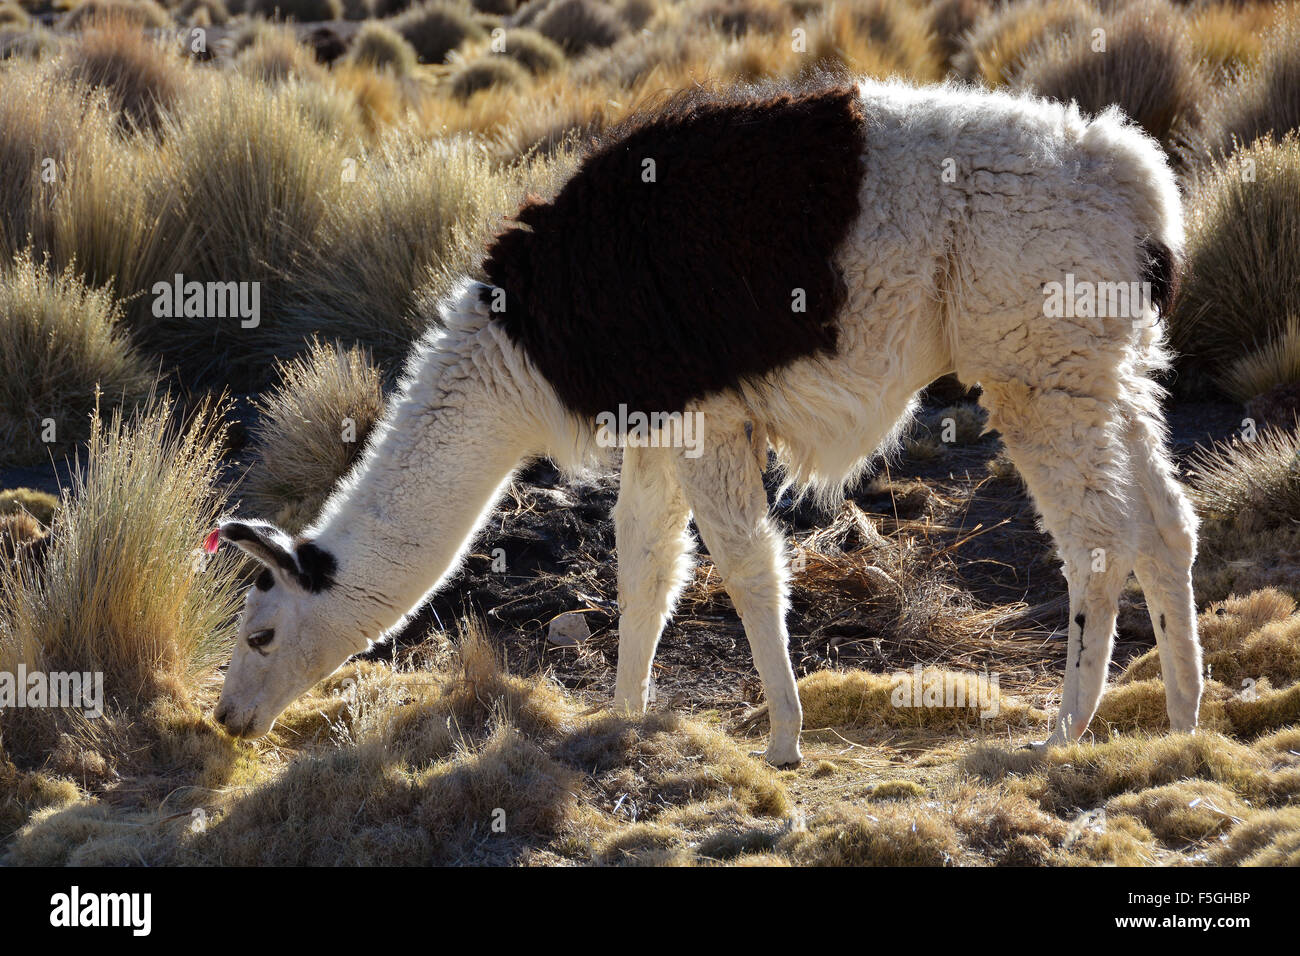 Brown and white llama (Lama glama) eating dry grass, Altiplano, Bolivia - Stock Image